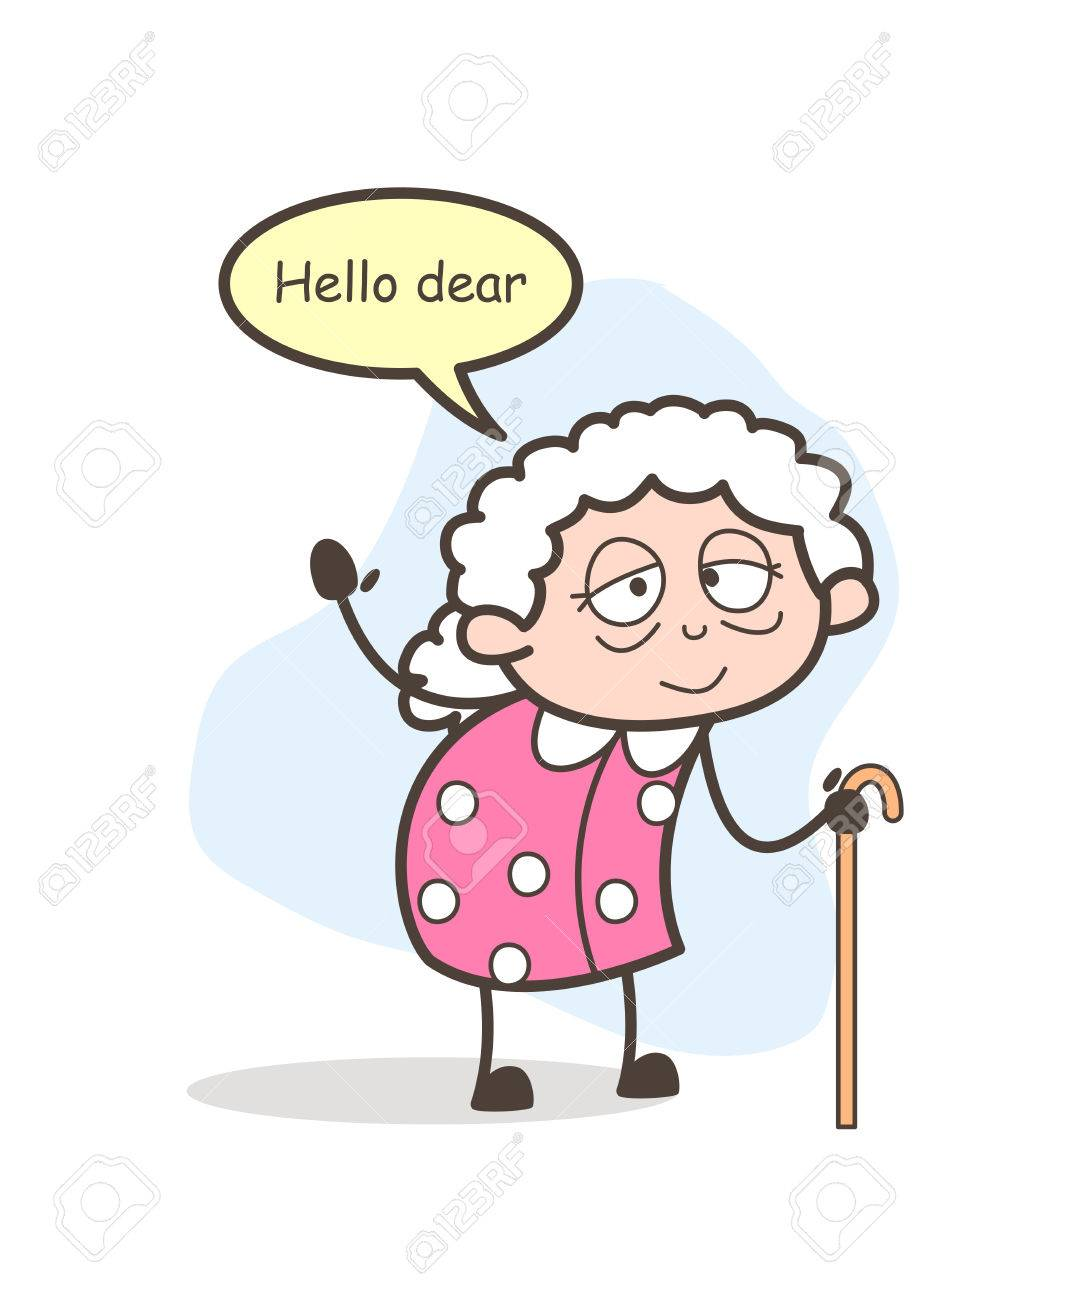 cartoon old lady saying something vector illustration royalty free rh 123rf com funny old lady cartoon images old lady cartoon images free